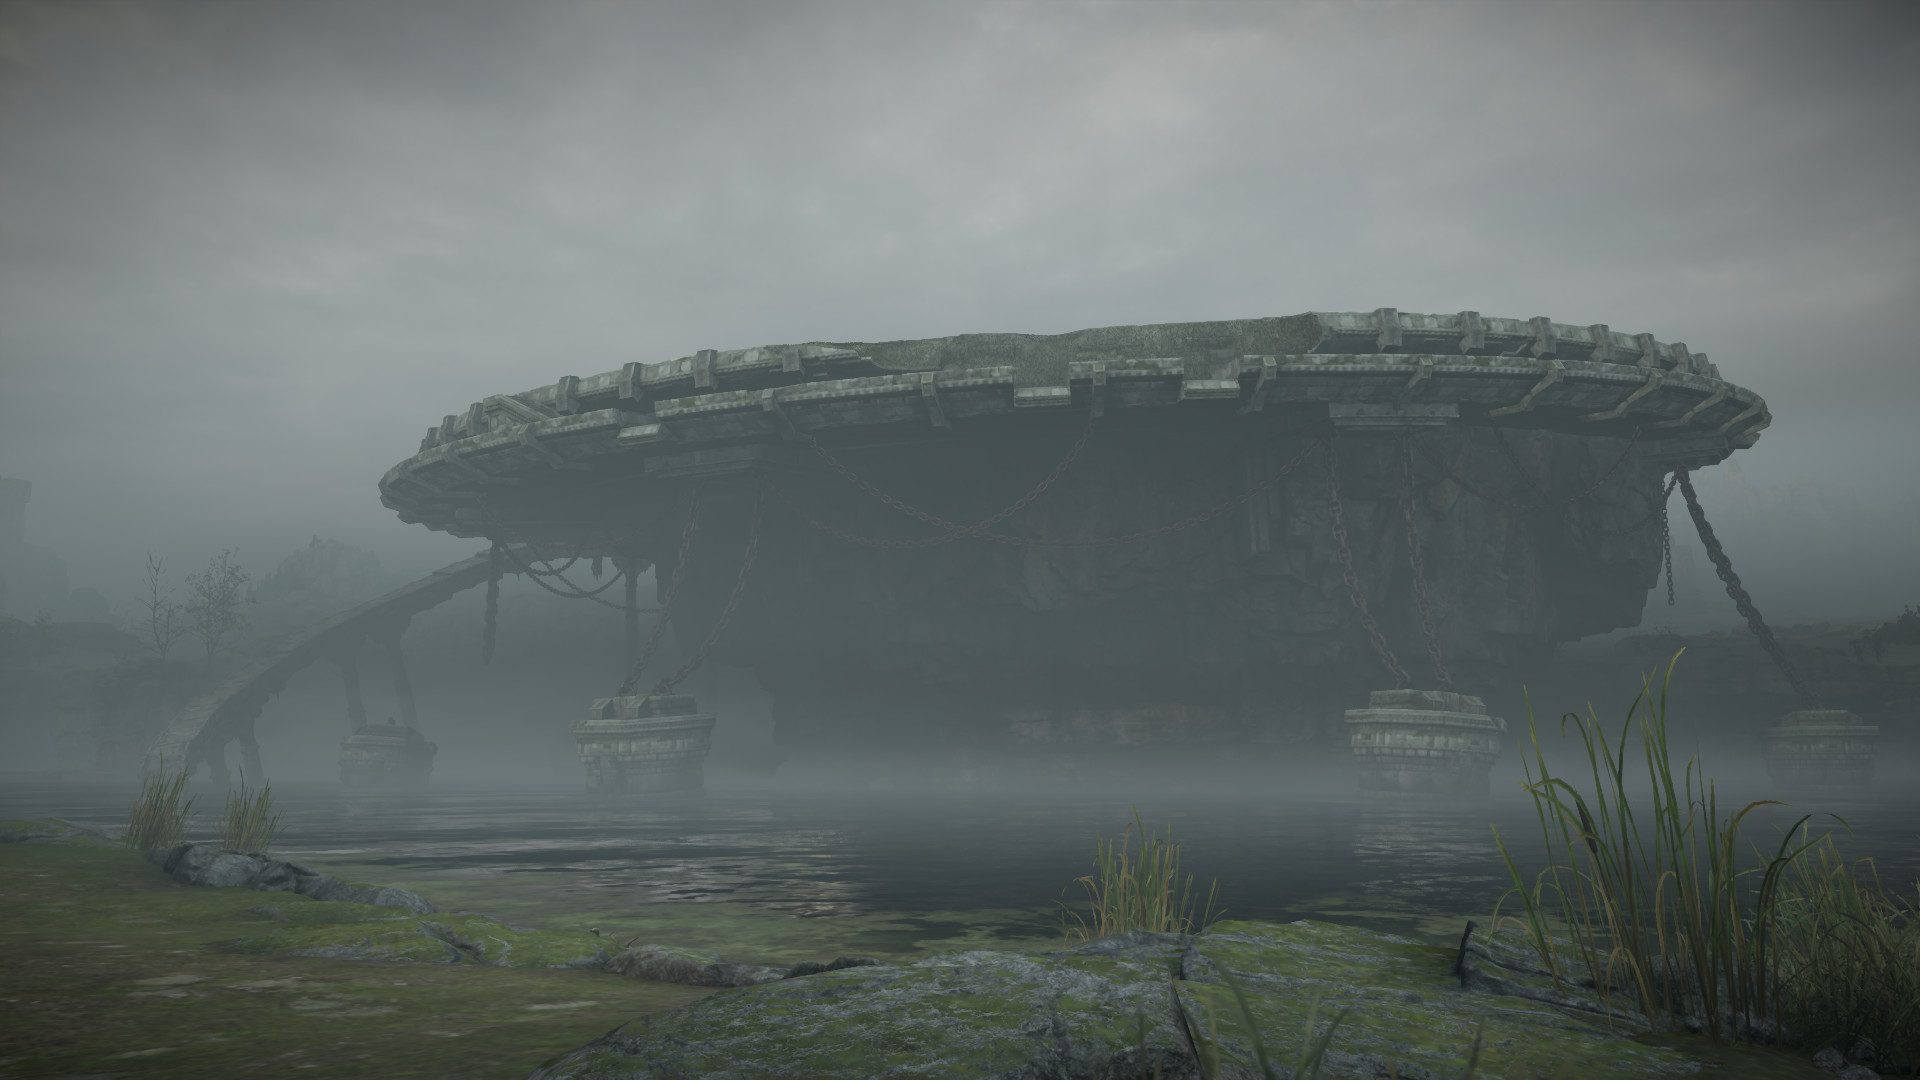 Arena 3: I was responsible for structures, decals, and foliage placement. The water and distant terrain is not my work.